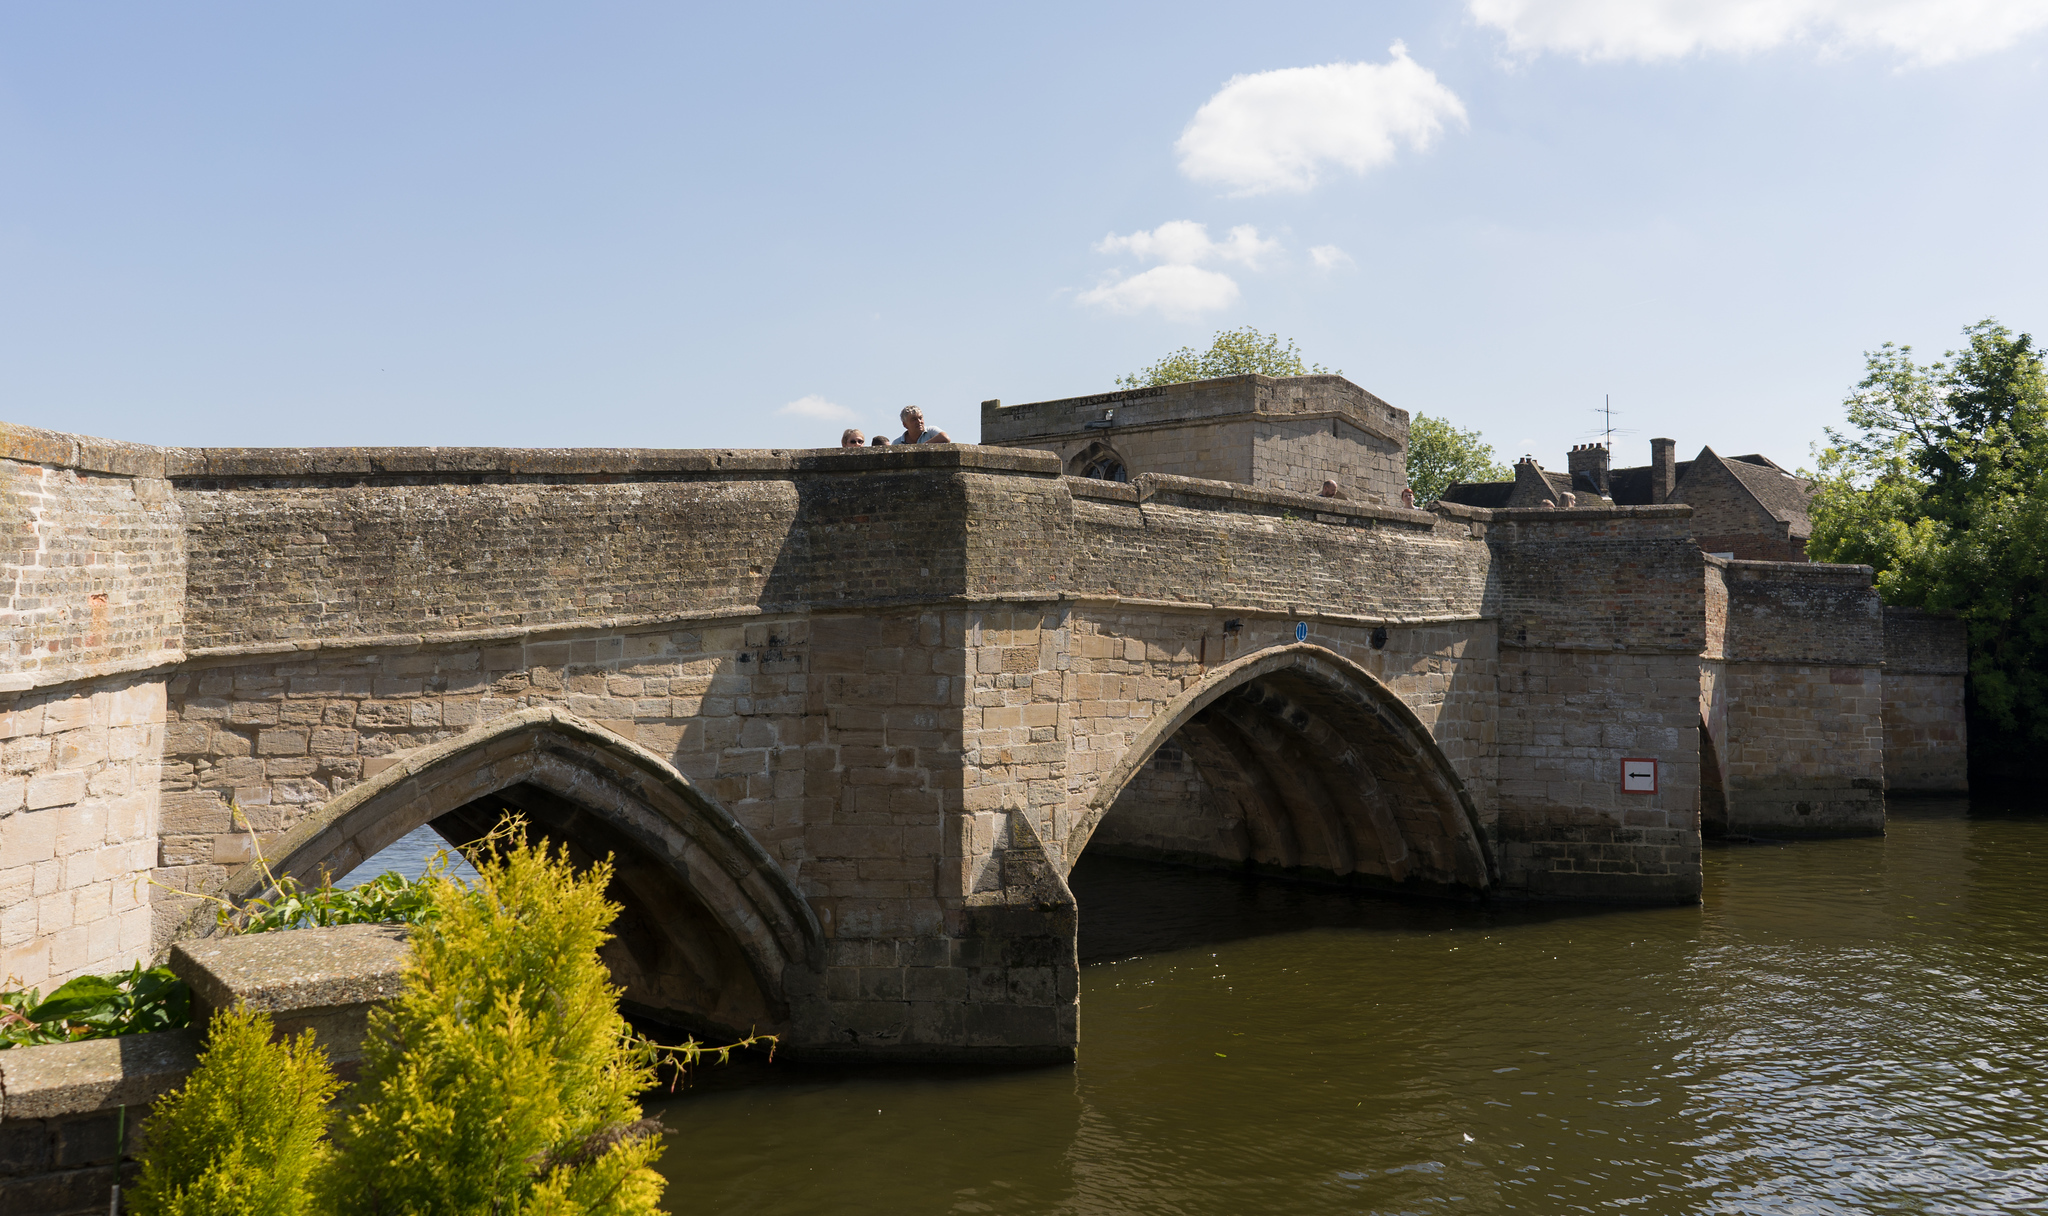 St Ives Bridge from the River Terrace Cafe, Cambridgeshire